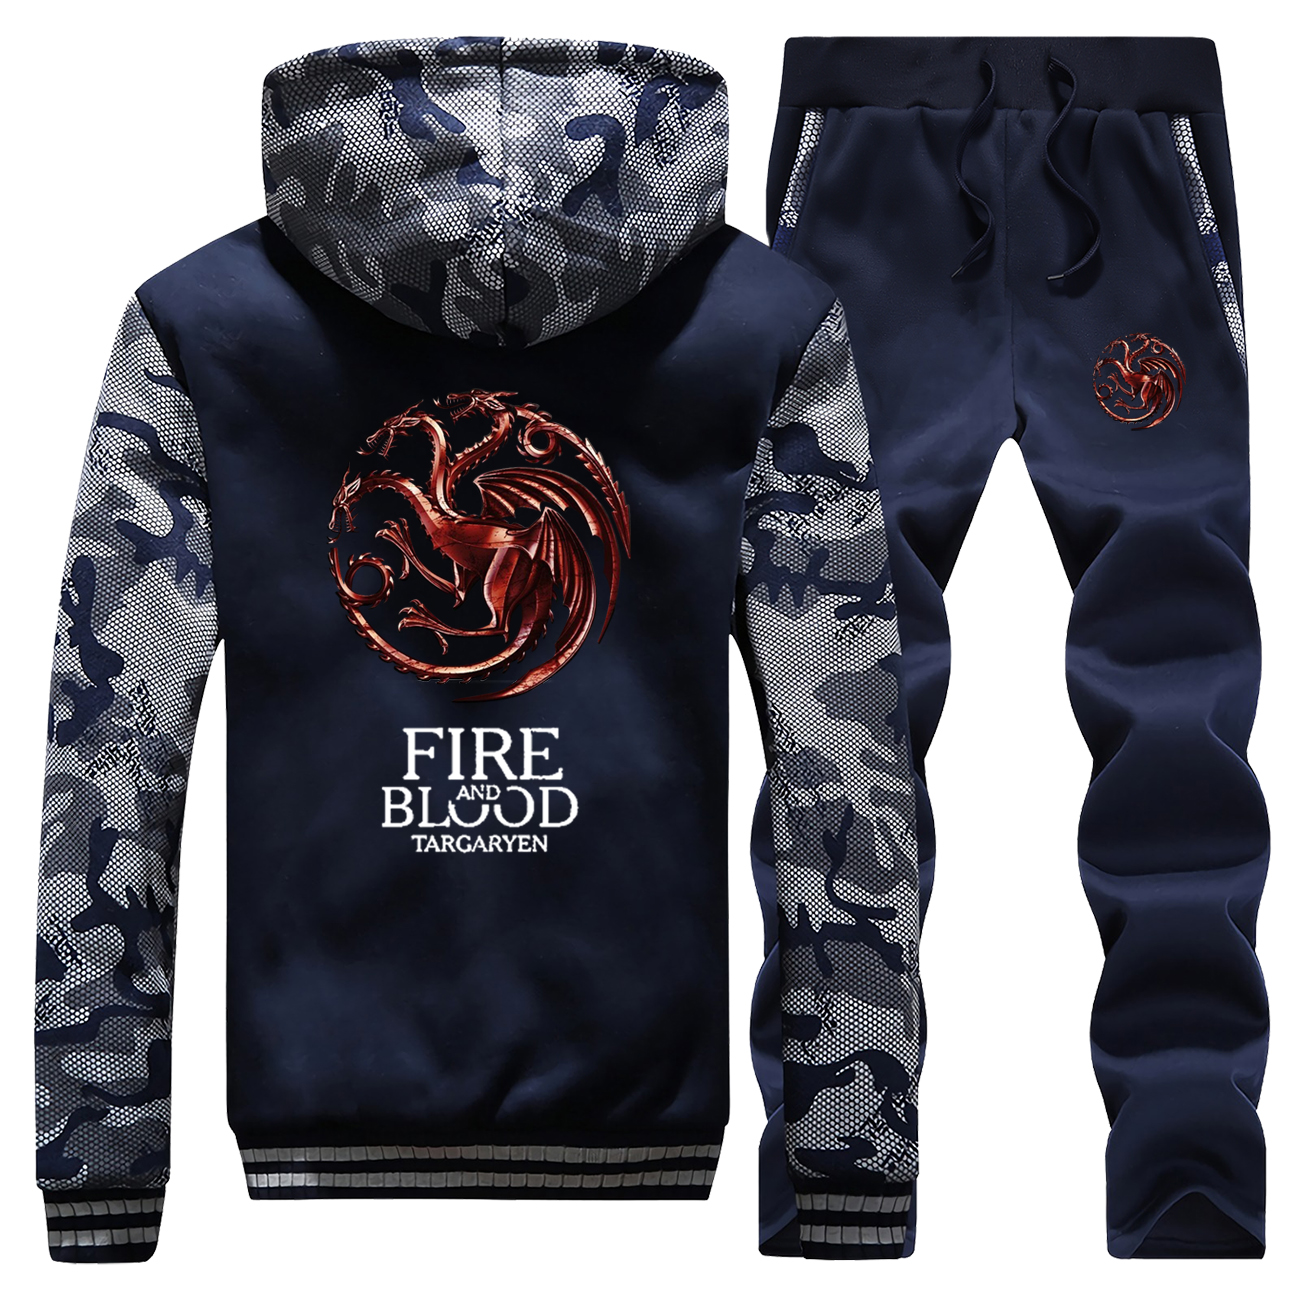 Thick Hoodie Fire And Blood Camo Male Set Targayen Dragon Fleece Hip Hop Warm Tracksuit Fleece Game Of Thrones Pants Sweatshirts